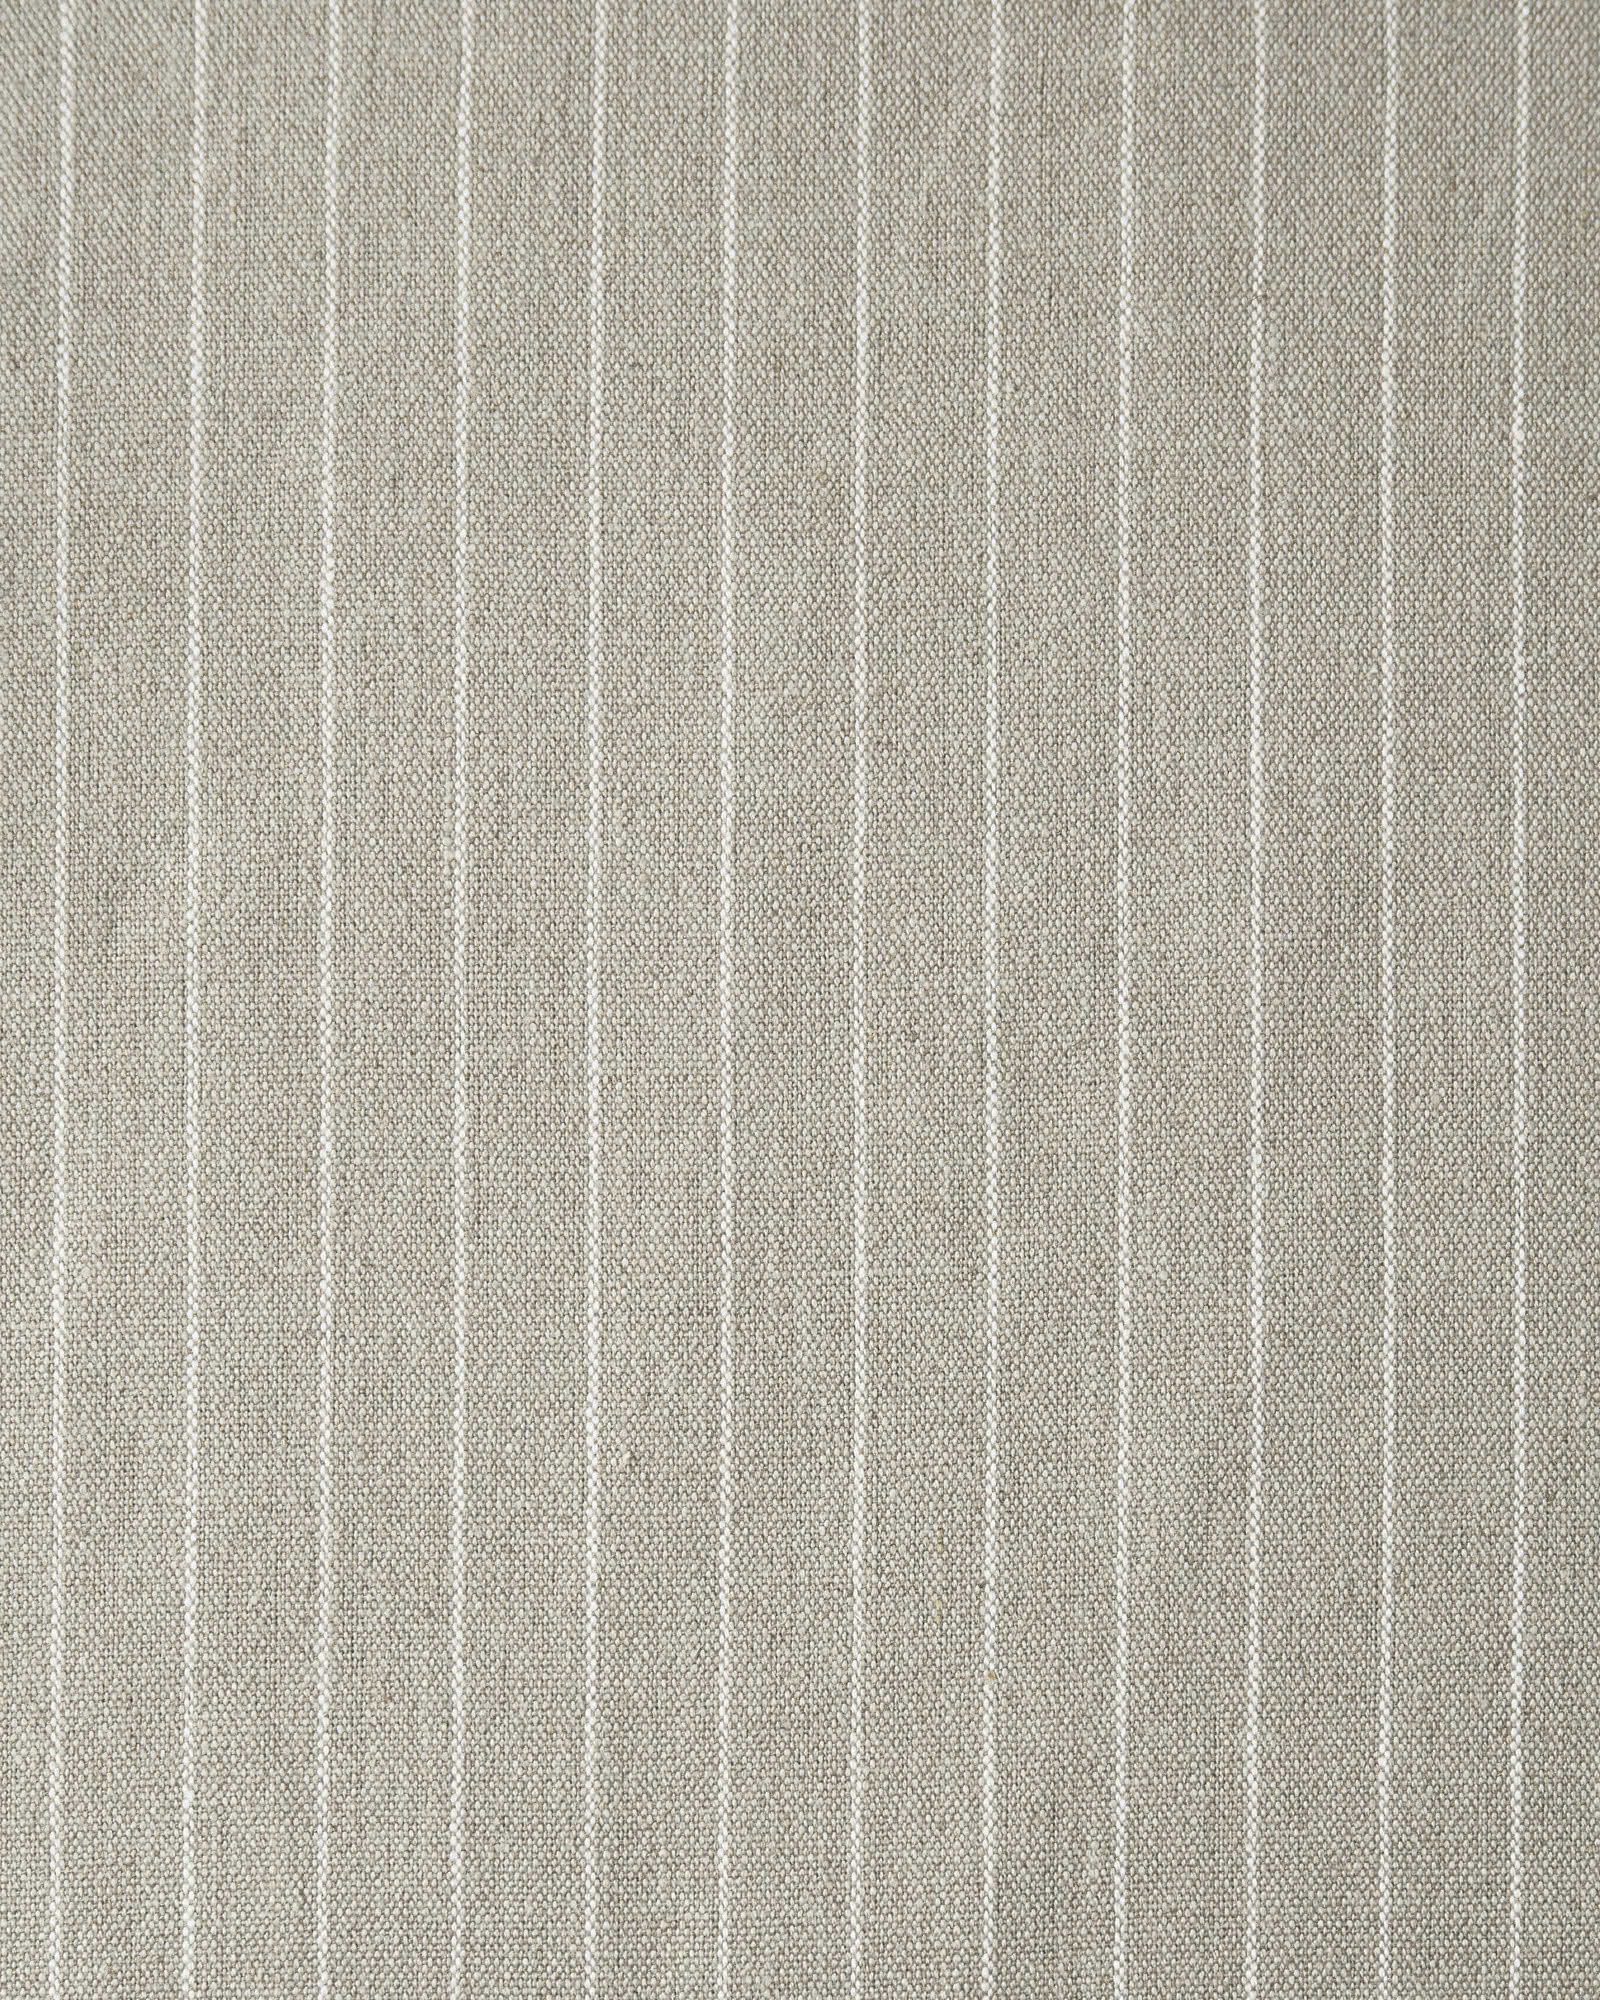 Pencil Stripe Linen Fabric Swatch